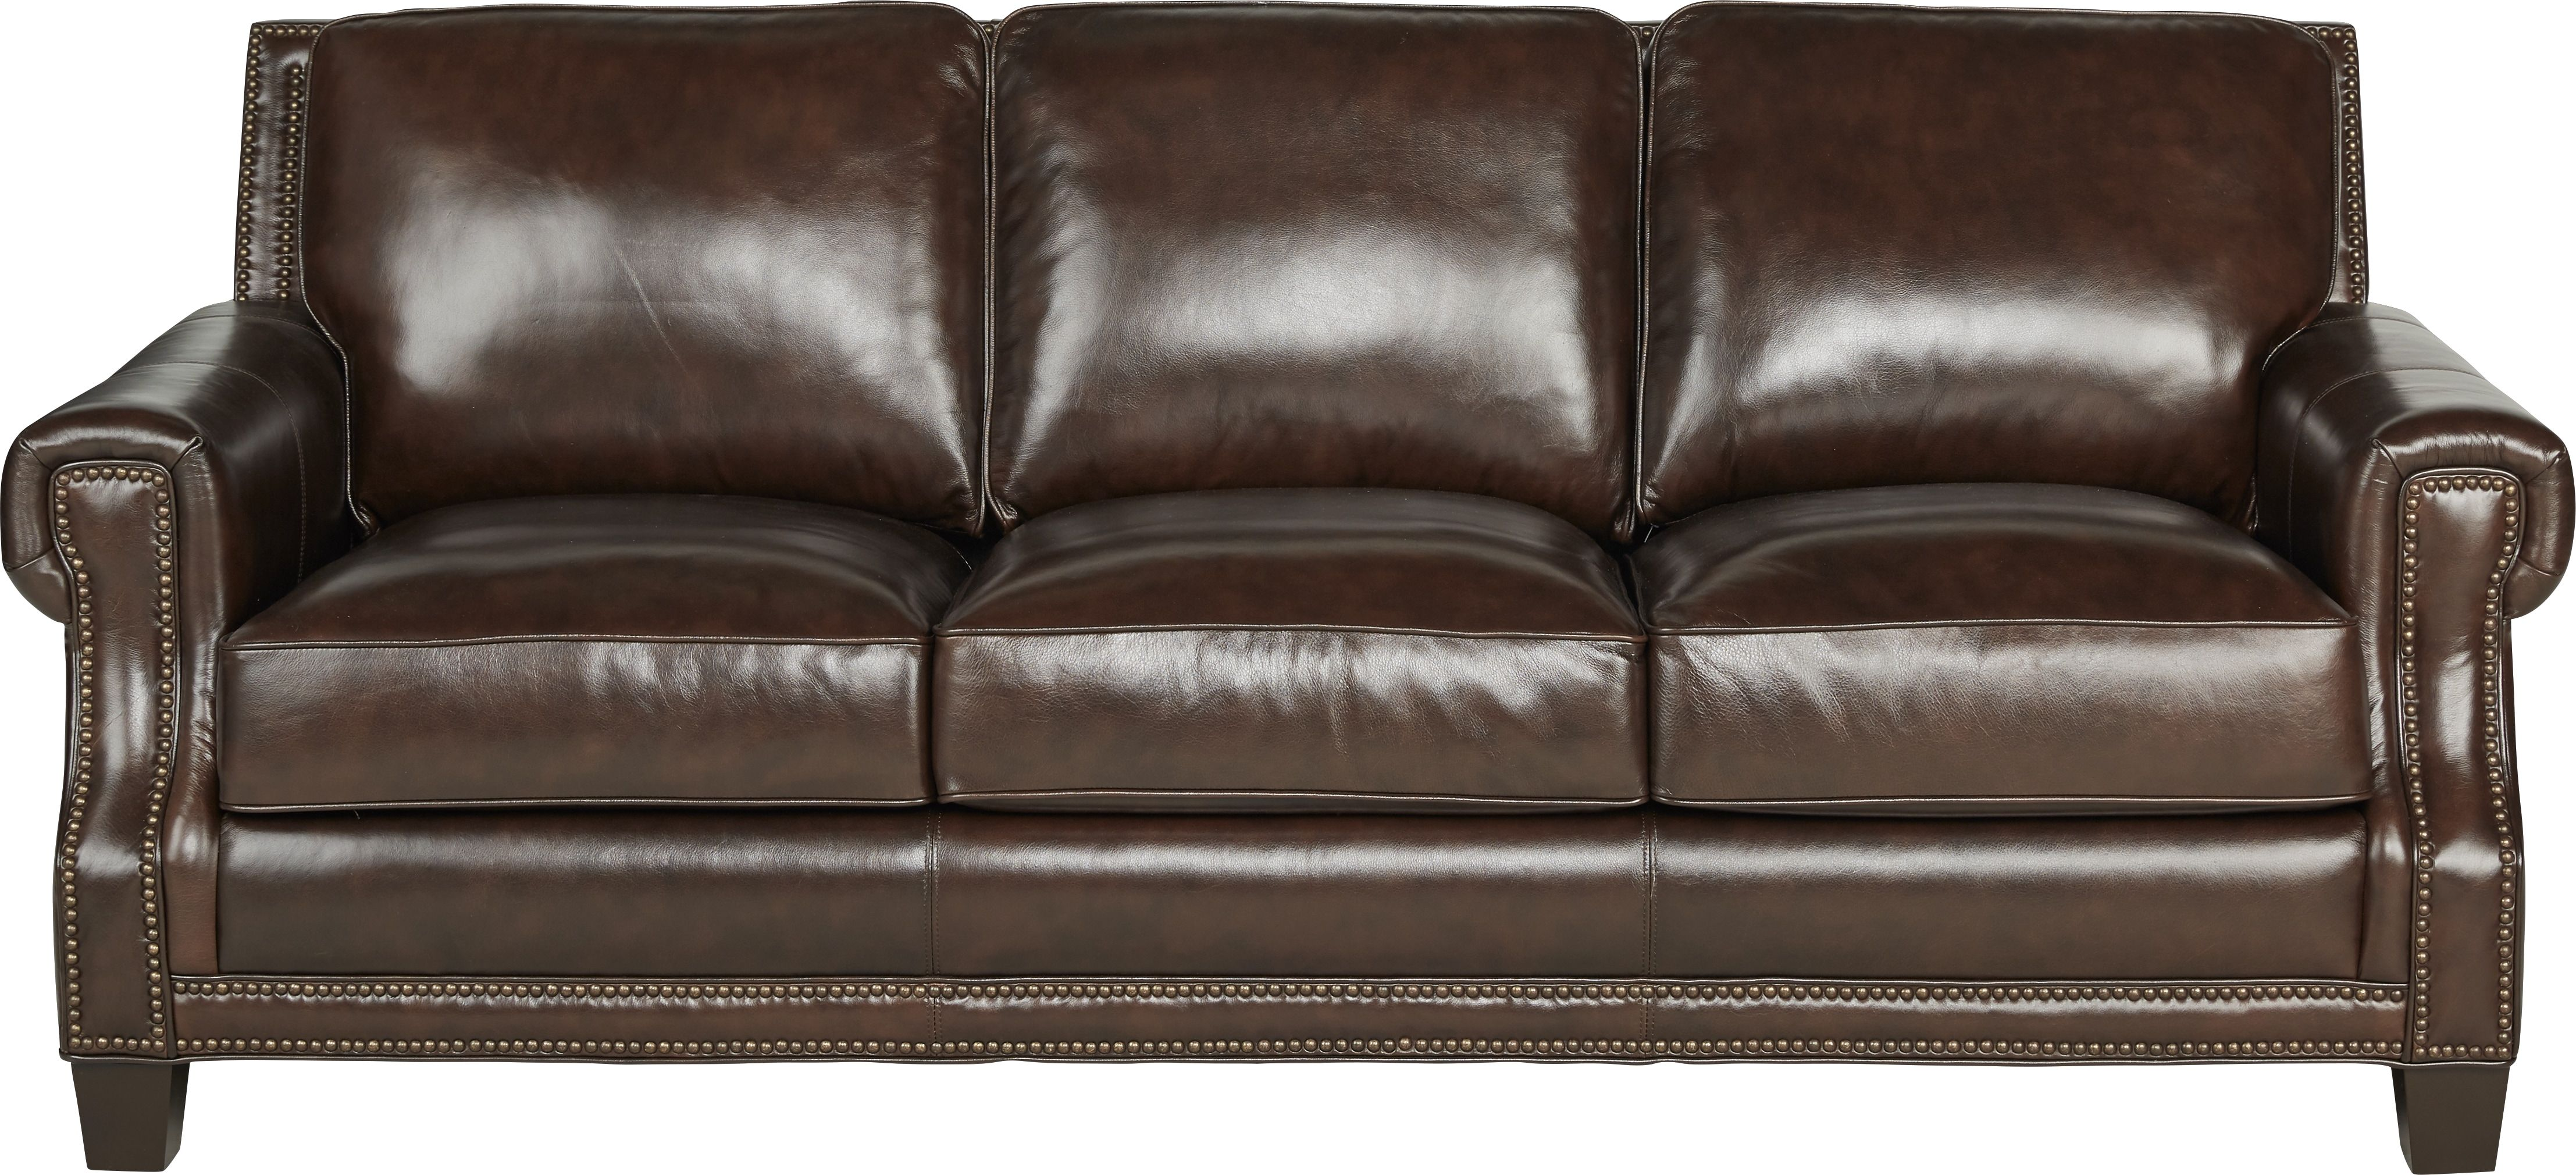 Vicenza Chocolate Leather Sofa | Sofas in 2019 | Real ...